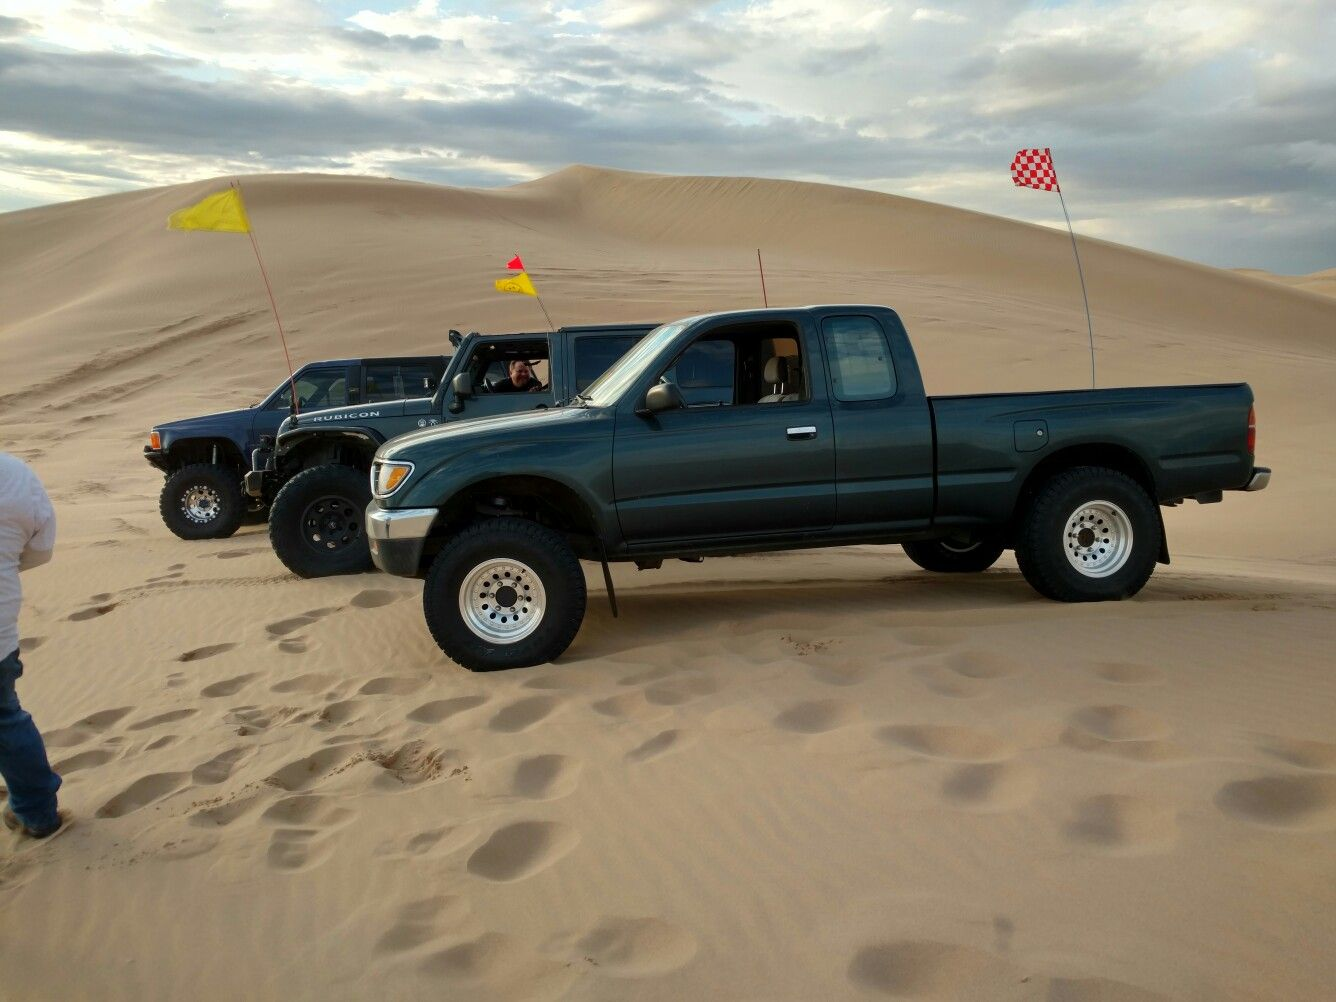 hight resolution of 1996 toyota tacoma 4x4 in the sand dunes glamis california